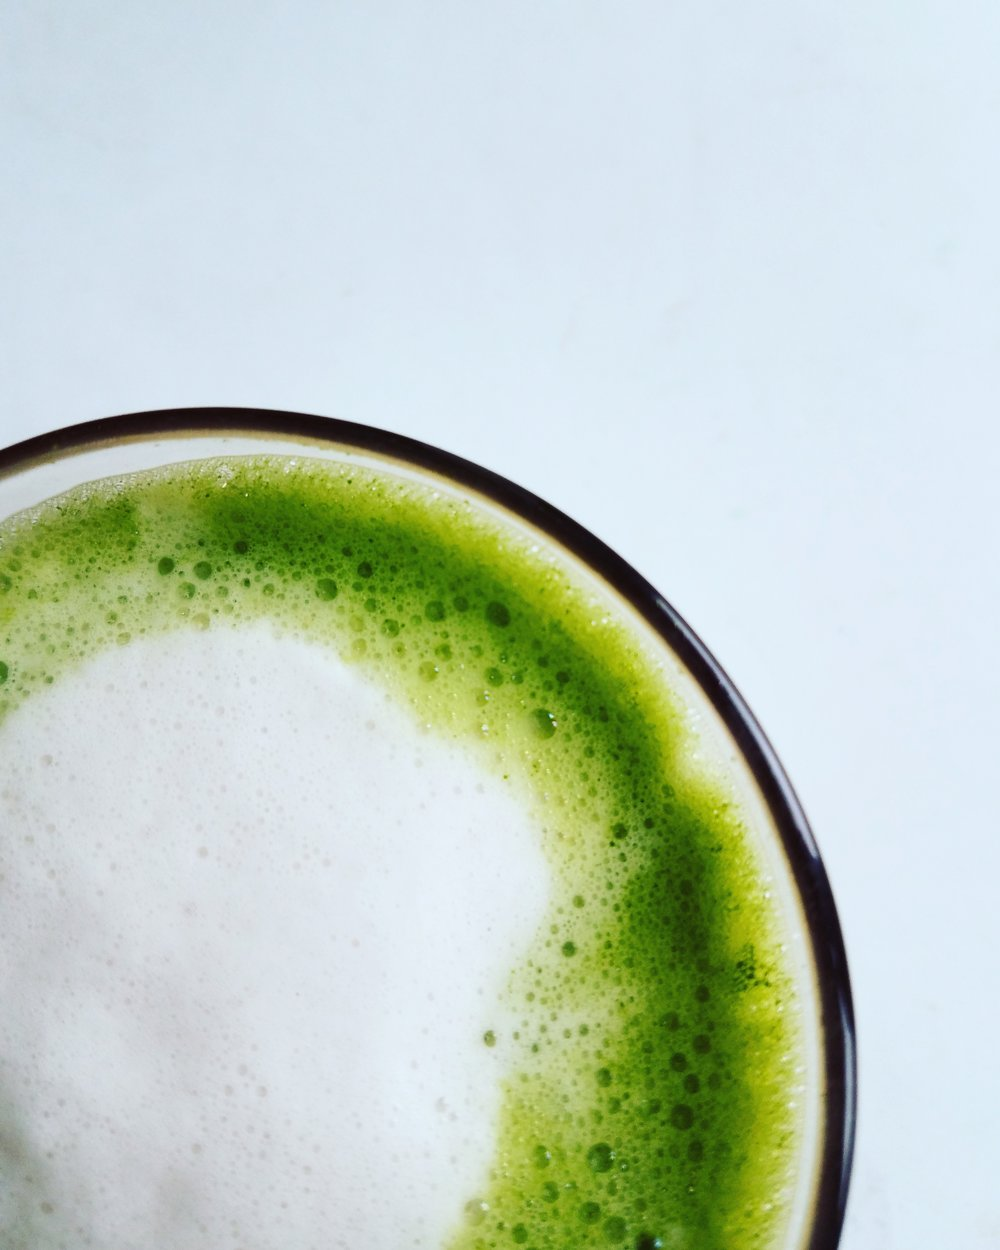 "Matcha is delicious. REALLY delicious. It is creamy and velvety and DELICIOUS. Not only that, it is AMAZING for you. It is said to boost your metabolism, enhance weight loss, detoxify your body and prevent premature aging. Research is even being carried out into its  anti-cancer benefits . Oh, and it's delicious. Go get a cup RIGHT NOW and read on about this magical powder. Here is my little love letter to Matcha.   What is Matcha?  Matcha comes from the same plant that all true teas come from; Camellia Sinensis. The leaves from this plant can be made into green tea (unfermented - simply steamed and dried), into oolong (partially fermented) and black tea (fully fermented). Matcha is a true green tea, but growth style, harvest and production are different.  This plant does have different varieties, some of which produce higher grade Matcha, the best coming from Samidori, Okumidori and Yabukita.   Why is Matcha so bright?  Three weeks before harvest the tea plants are covered with bamboo mats or tarp, depriving them of sunlight. This increases the chlorophyll content and turns the leaves a dark green which gives Matcha it's color. The leaves are then harvested, steamed and air-dried. They are then sorted for grade, destemmed and deveined. It is at this point that the leaves become ""tencha"". Once the tencha is ground it becomes Matcha.   What grade of Matcha should I choose?  If you want to reap the full health benefits of Matcha, look for ceremonial grade or hyper-premium. These best grades are ground on a stone mill. This process is slow, keeping the temperatures low to preserve high nutrient levels. It also produces a molecule with a specific shape which influences the taste and feel of the Matcha. Lower grade Matcha, such as culinary-grade, is ground by machines and can taste bitter when made into a tea. When buying Matcha, look for the uber-vibrant green color provided by the overproduction of chlorophyll. If it is duller (like moss), don't expect best quality.   What does it taste like?  Matcha has an umami taste (a Japanese term for the fifth scientific taste meaning ""rounded, rich, savory""). It tastes quite different from other teas. I was never a big fan of steeped green tea, but I love Matcha.   Why should I try Matcha?  Matcha has a different effect on your body than coffee. The caffeine from Matcha delivers a calm energy rather than an urgent, jittery restlessness. Matcha has long been used by Buddhist monks to help their daily meditation due to the combination of caffeine (which fights off drowsiness) and L-theanine (which sharpens focus and concentration).  L-theanine, present in Matcha at around 5 times the levels when compared to a regular cup of green tea, is an amino acid which is reported to have a calming, relaxing effect, reducing anxiety. Whilst espresso delivers an instant effect, the l-theanine in Matcha is released slowly, keeping your energy levels up longer.     What else can Matcha do for me?  Matcha is rich in epigallocatechin gallate (EGCG, also known as catechin). Because you are taking the whole leaf, instead of just steeping and throwing them away, one cup of Matcha can deliver the health benefits equivalent to 10 - 20 cups of regular green tea. EGCG is said to prevent cell degeneration and premature aging. It can boost your metabolism, assisting your body's ability to utilize energy.   How to make a great cup  ·      Source the best quality possible, making sure it is from a Japanese farm. ·      Place a small amount, around 1 teaspoon, Matcha into a cup or bowl. ·      The water you add should be hot but not boiling - between 150 and 170 degrees. If you don't have a thermometer, after boiling the kettle, remove the lid and let it stand for a minute or two before using. ·    Add a small amount (a few tablespoons) of this water to the cup, whisking into a soft paste, adding more as you whisk to reach the consistency you desire. The ratio of Matcha to water is up to you - the more Matcha the thicker and frothier the tea. You can use the traditional chasen (a bamboo whisk) or an electric milk frother wand but if you don't have either, begin by using a teaspoon and mix in the same way as you would cocoa powder, ie small amounts of liquid until a paste is formed, adding a little more at a time. For a teaspoon of Matcha I would suggest a cup around the size of a macchiato (longer than an espresso, shorter than a (true!) cappuccino). ·      If you like, replace some of the water with a small amount of foamed milk. I use ⅔ water ⅓  unsweetened almond milk . ·      If you really need, add a drop or two of (best quality!) stevia. I did this in the beginning but now prefer the taste without. ·      Matcha is also delicious served iced.  If you haven't tried Matcha yet, please don't let your first experience be from any old cafe. Do it yourself or search out somewhere that serves the best quality. I have experienced some terrible versions out there, often low quality, overly sweetened or just drowned in a store-bought milk which takes over the taste. Of course, this isn't true of all cafes, there are a few who serve a truly good version. If you make it for yourself at home, try it the traditional way, with only water, and then if you like, add a little steamed (non-dairy is best)  milk  and (best quality) sweetener only if you need it."